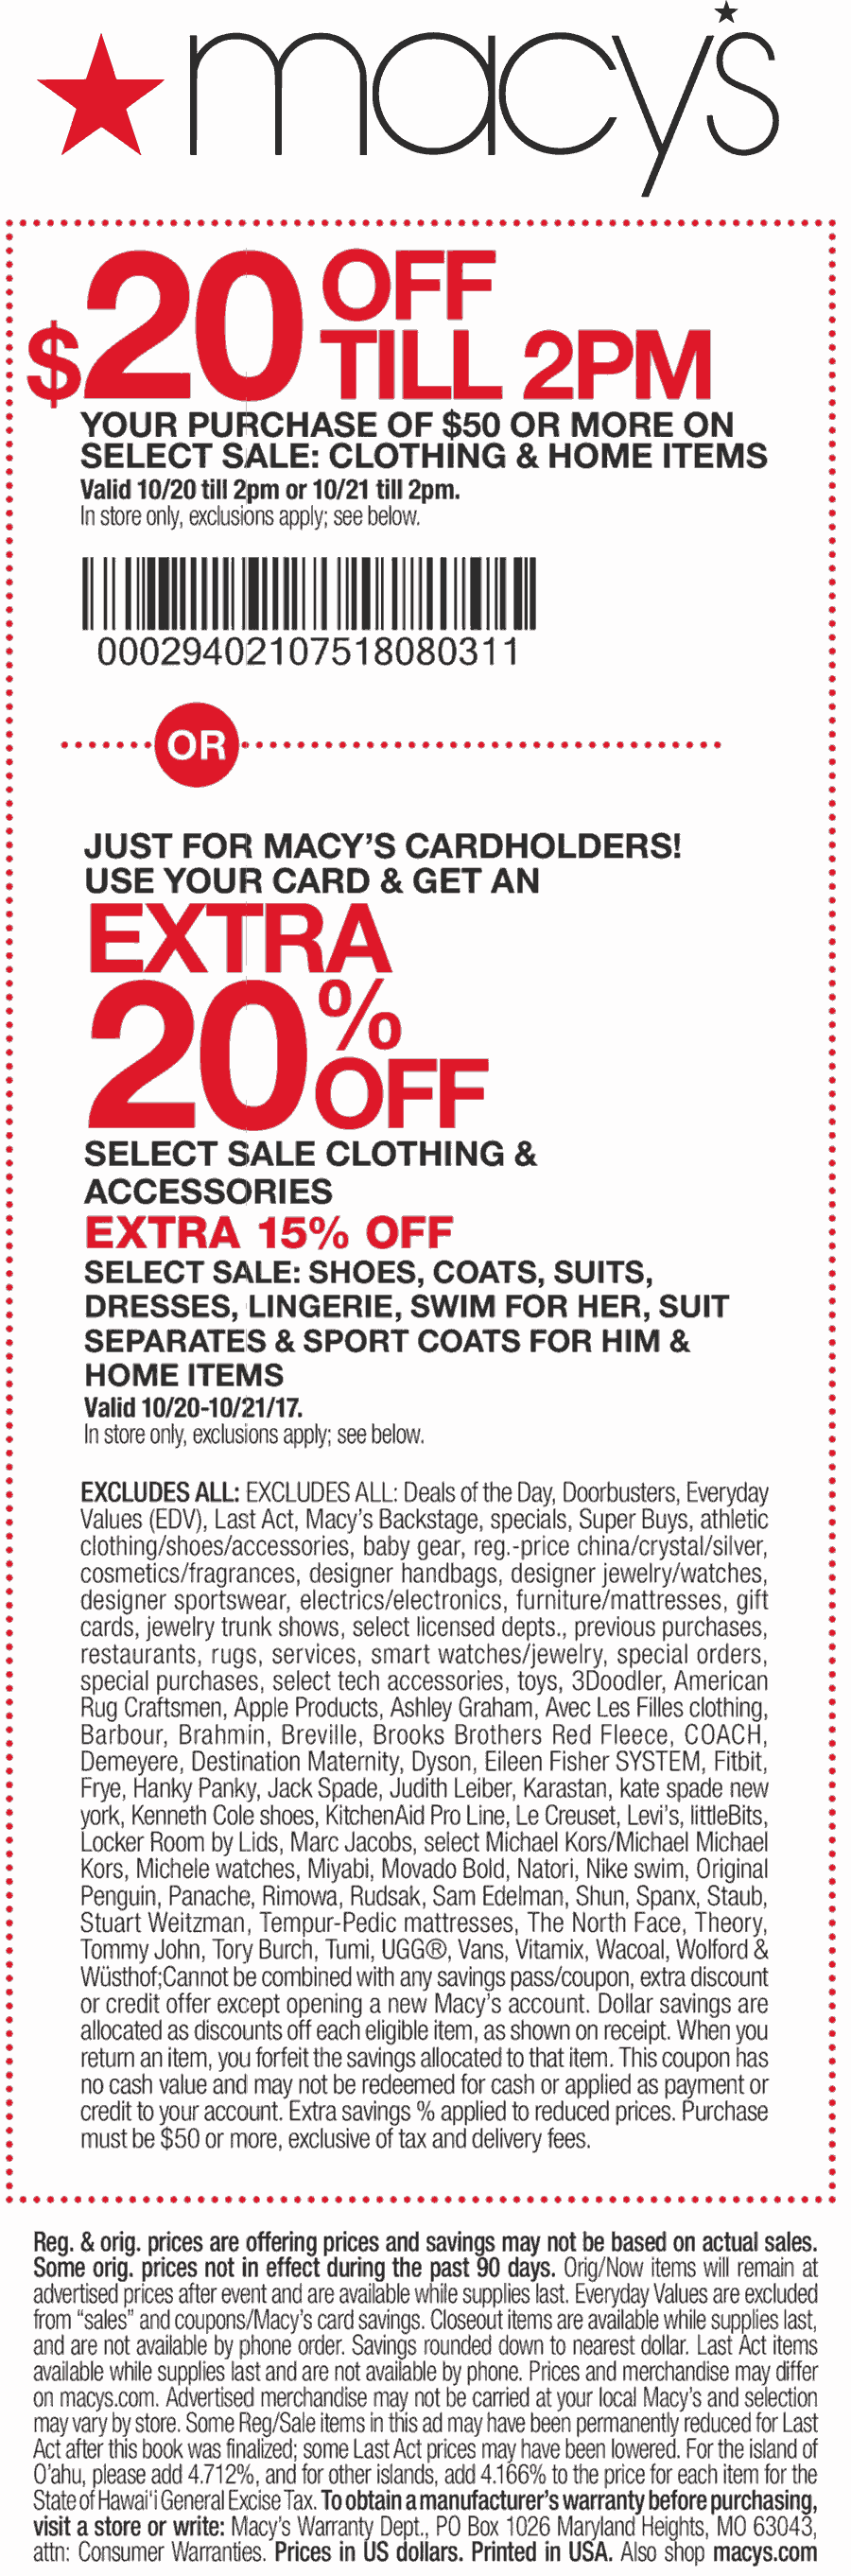 Macys Coupon March 2019 $20 off $50 til 2pm at Macys